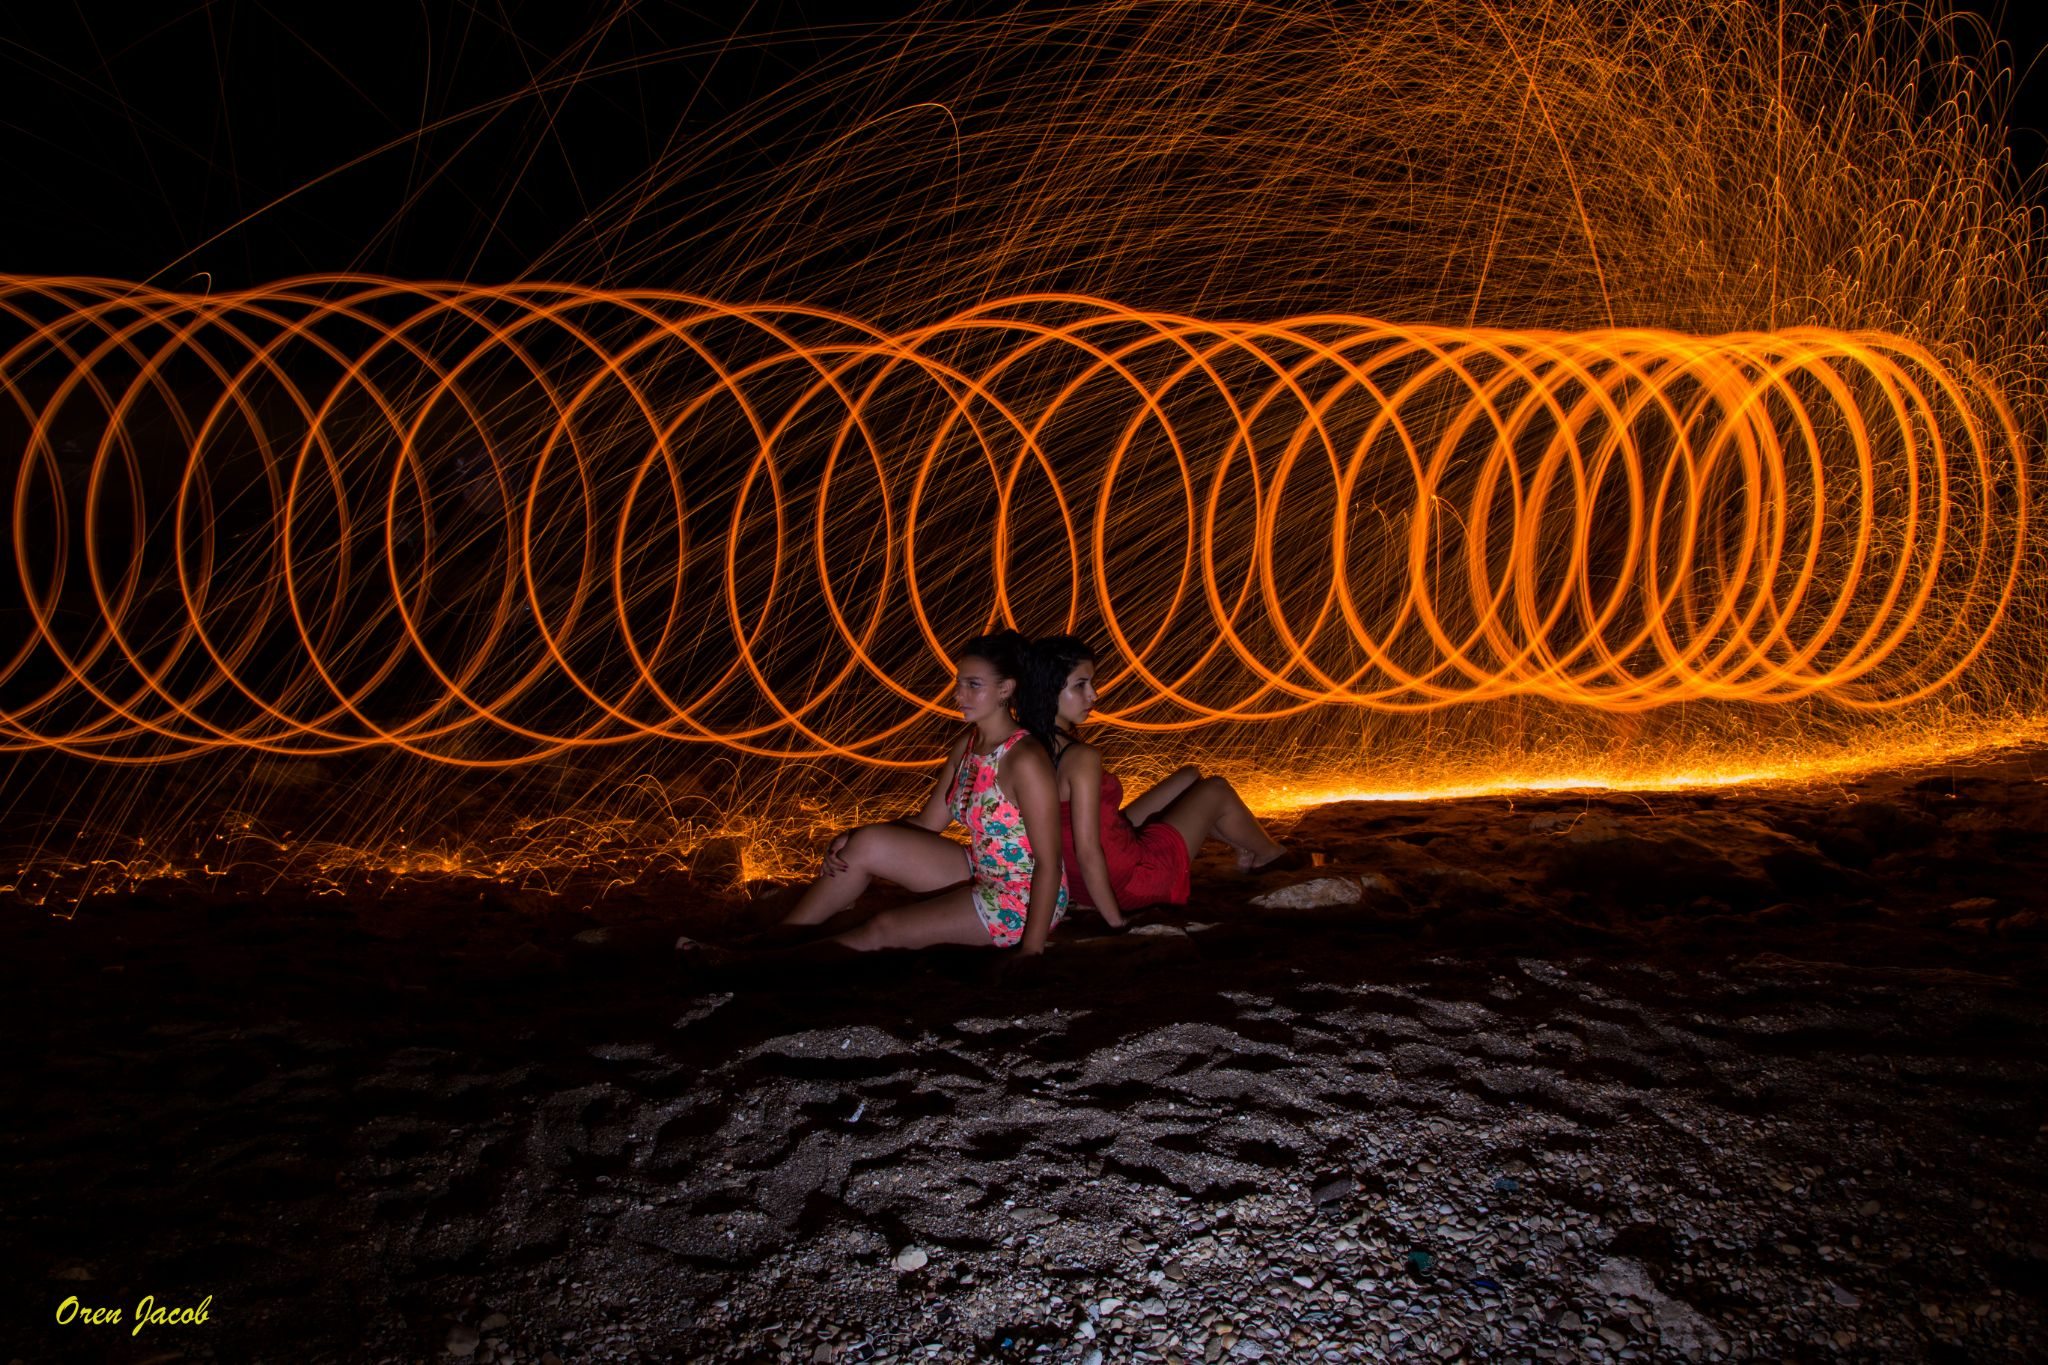 Spiral of Fire by oren.yacob